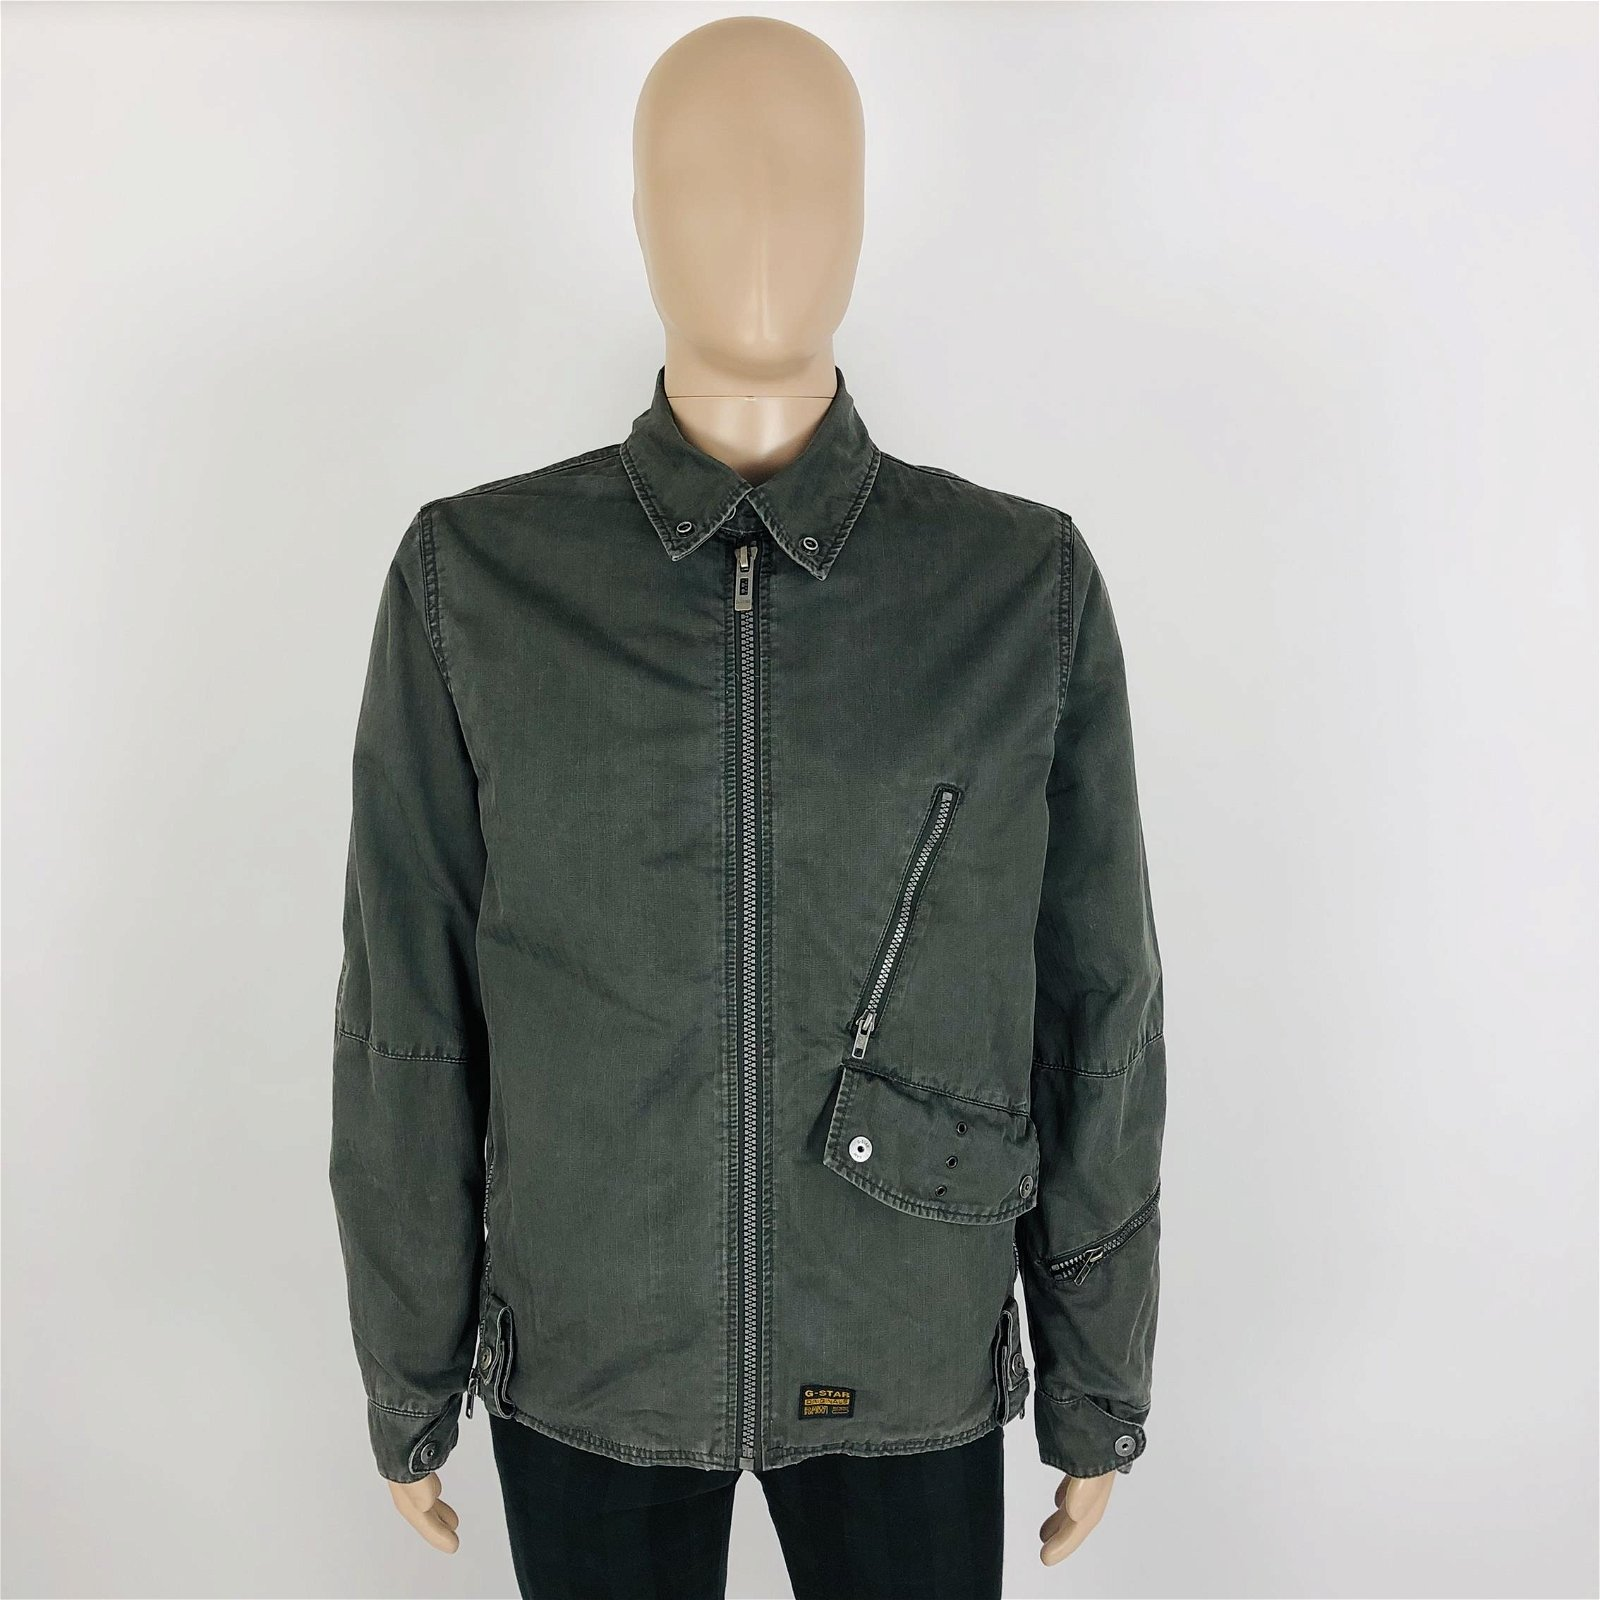 Men's G-Star RAW Jacket